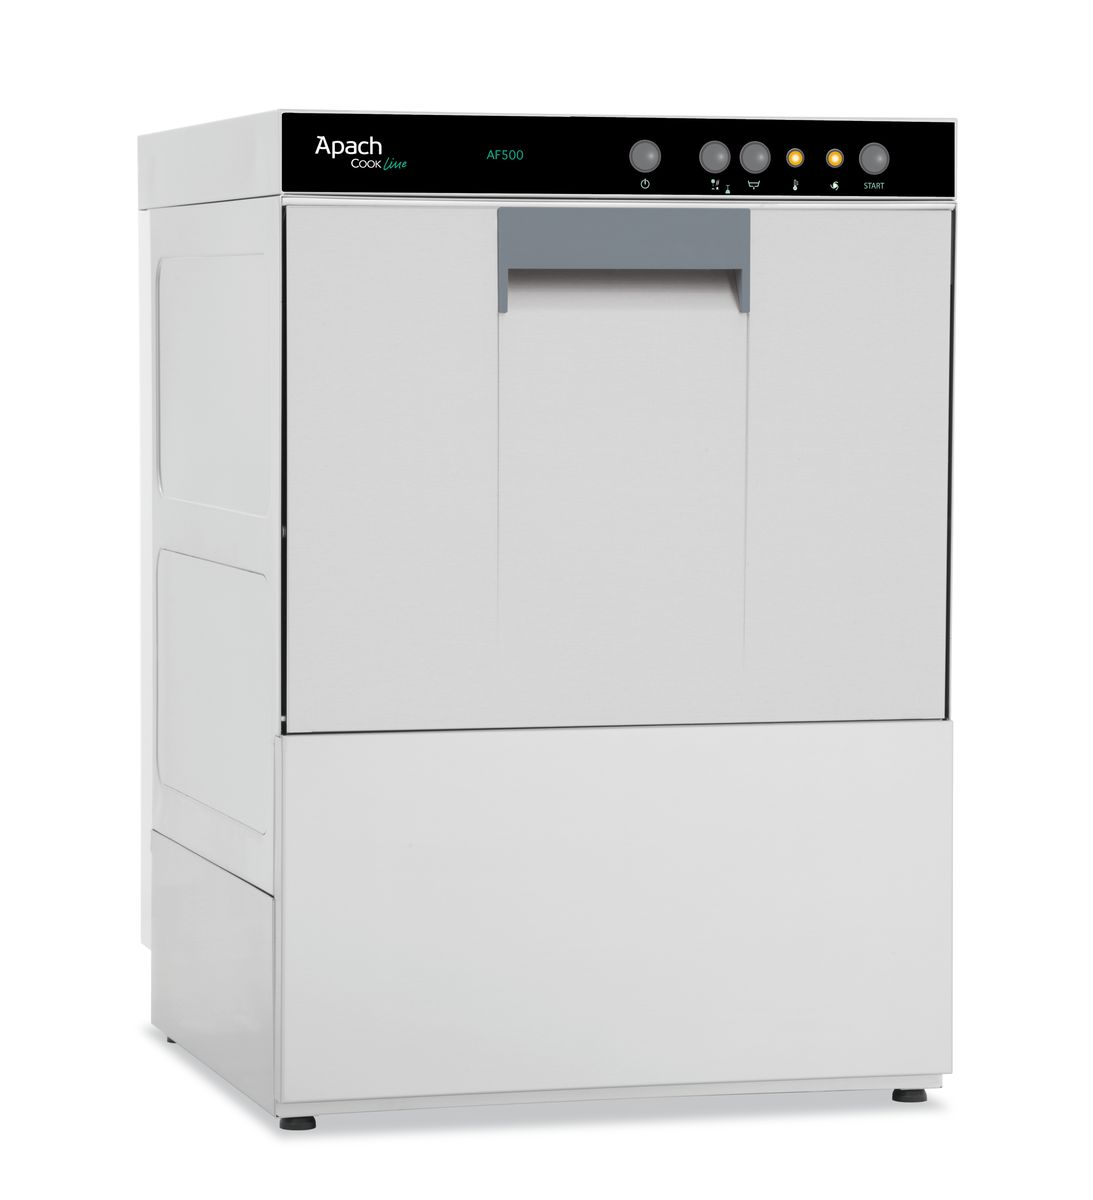 Front loading dishwashing machines